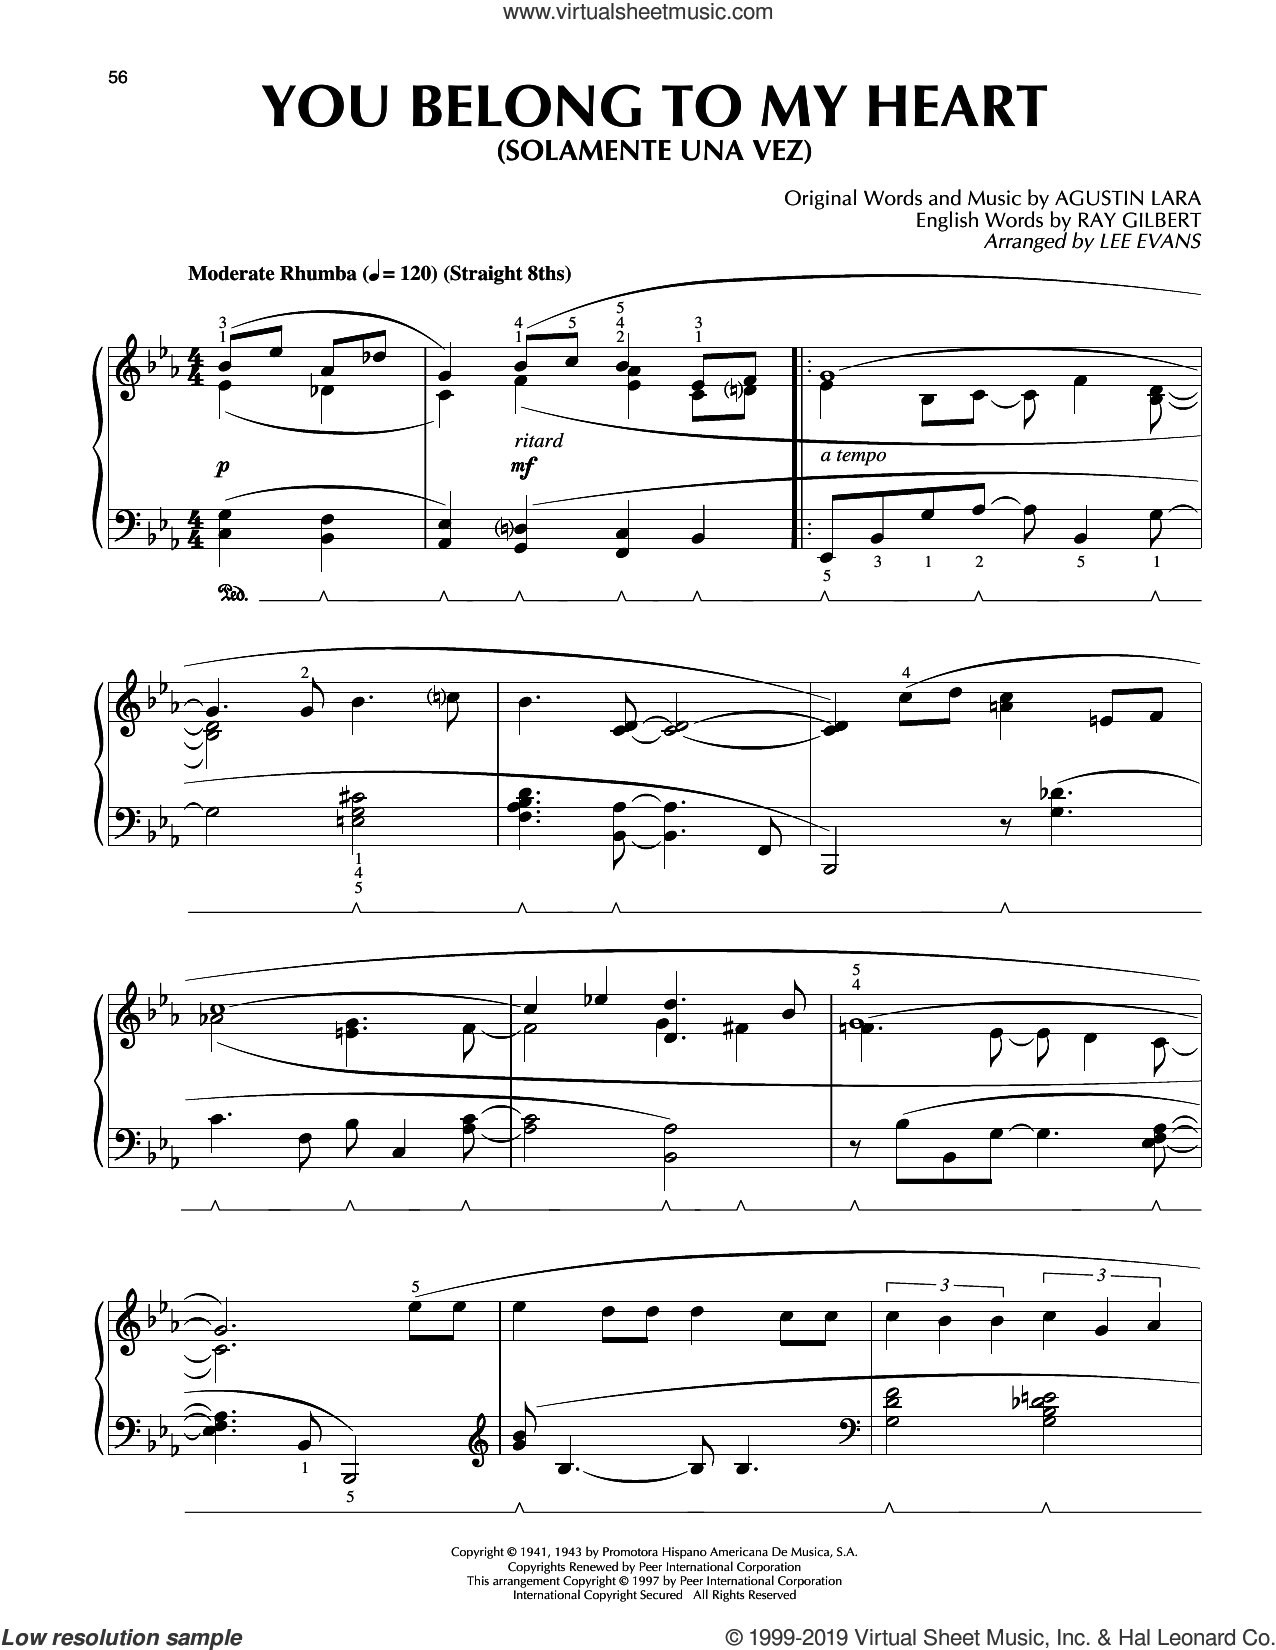 You Belong To My Heart (Solamente Una Vez) (arr. Lee Evans) sheet music for piano solo by Ray Gilbert, Lee Evans and Agustin Lara, intermediate skill level